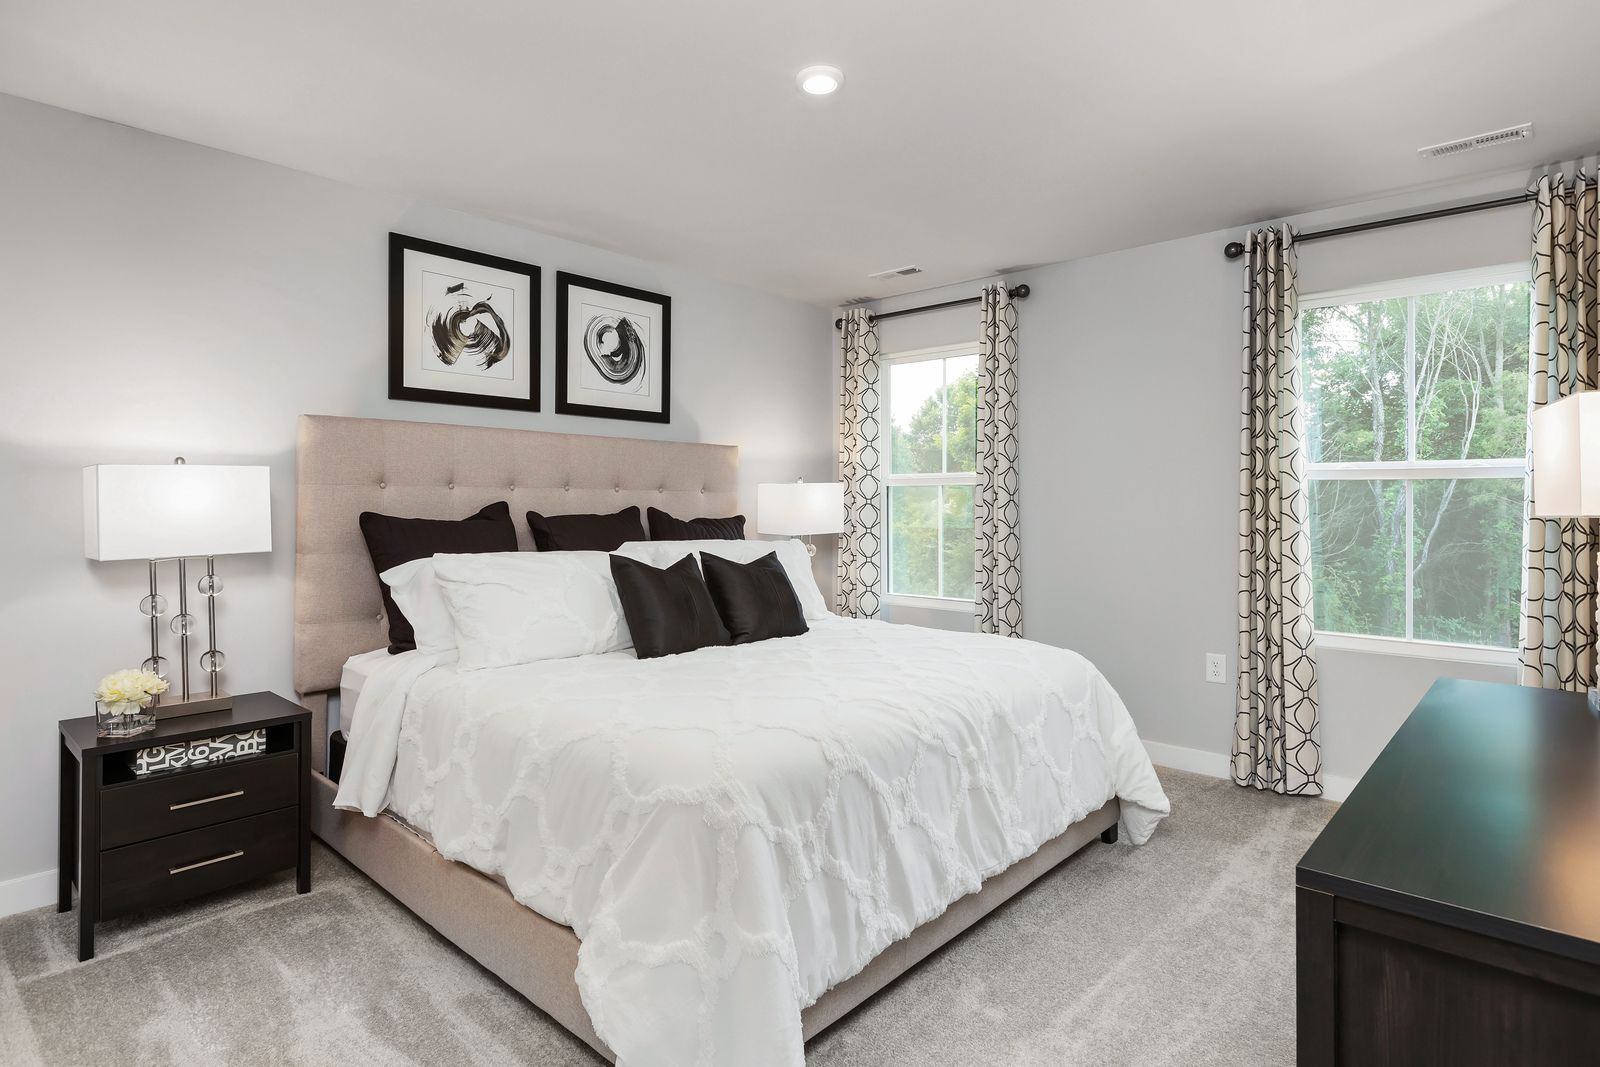 Bedroom featured in the Grand Cayman By Ryan Homes in Nashville, TN